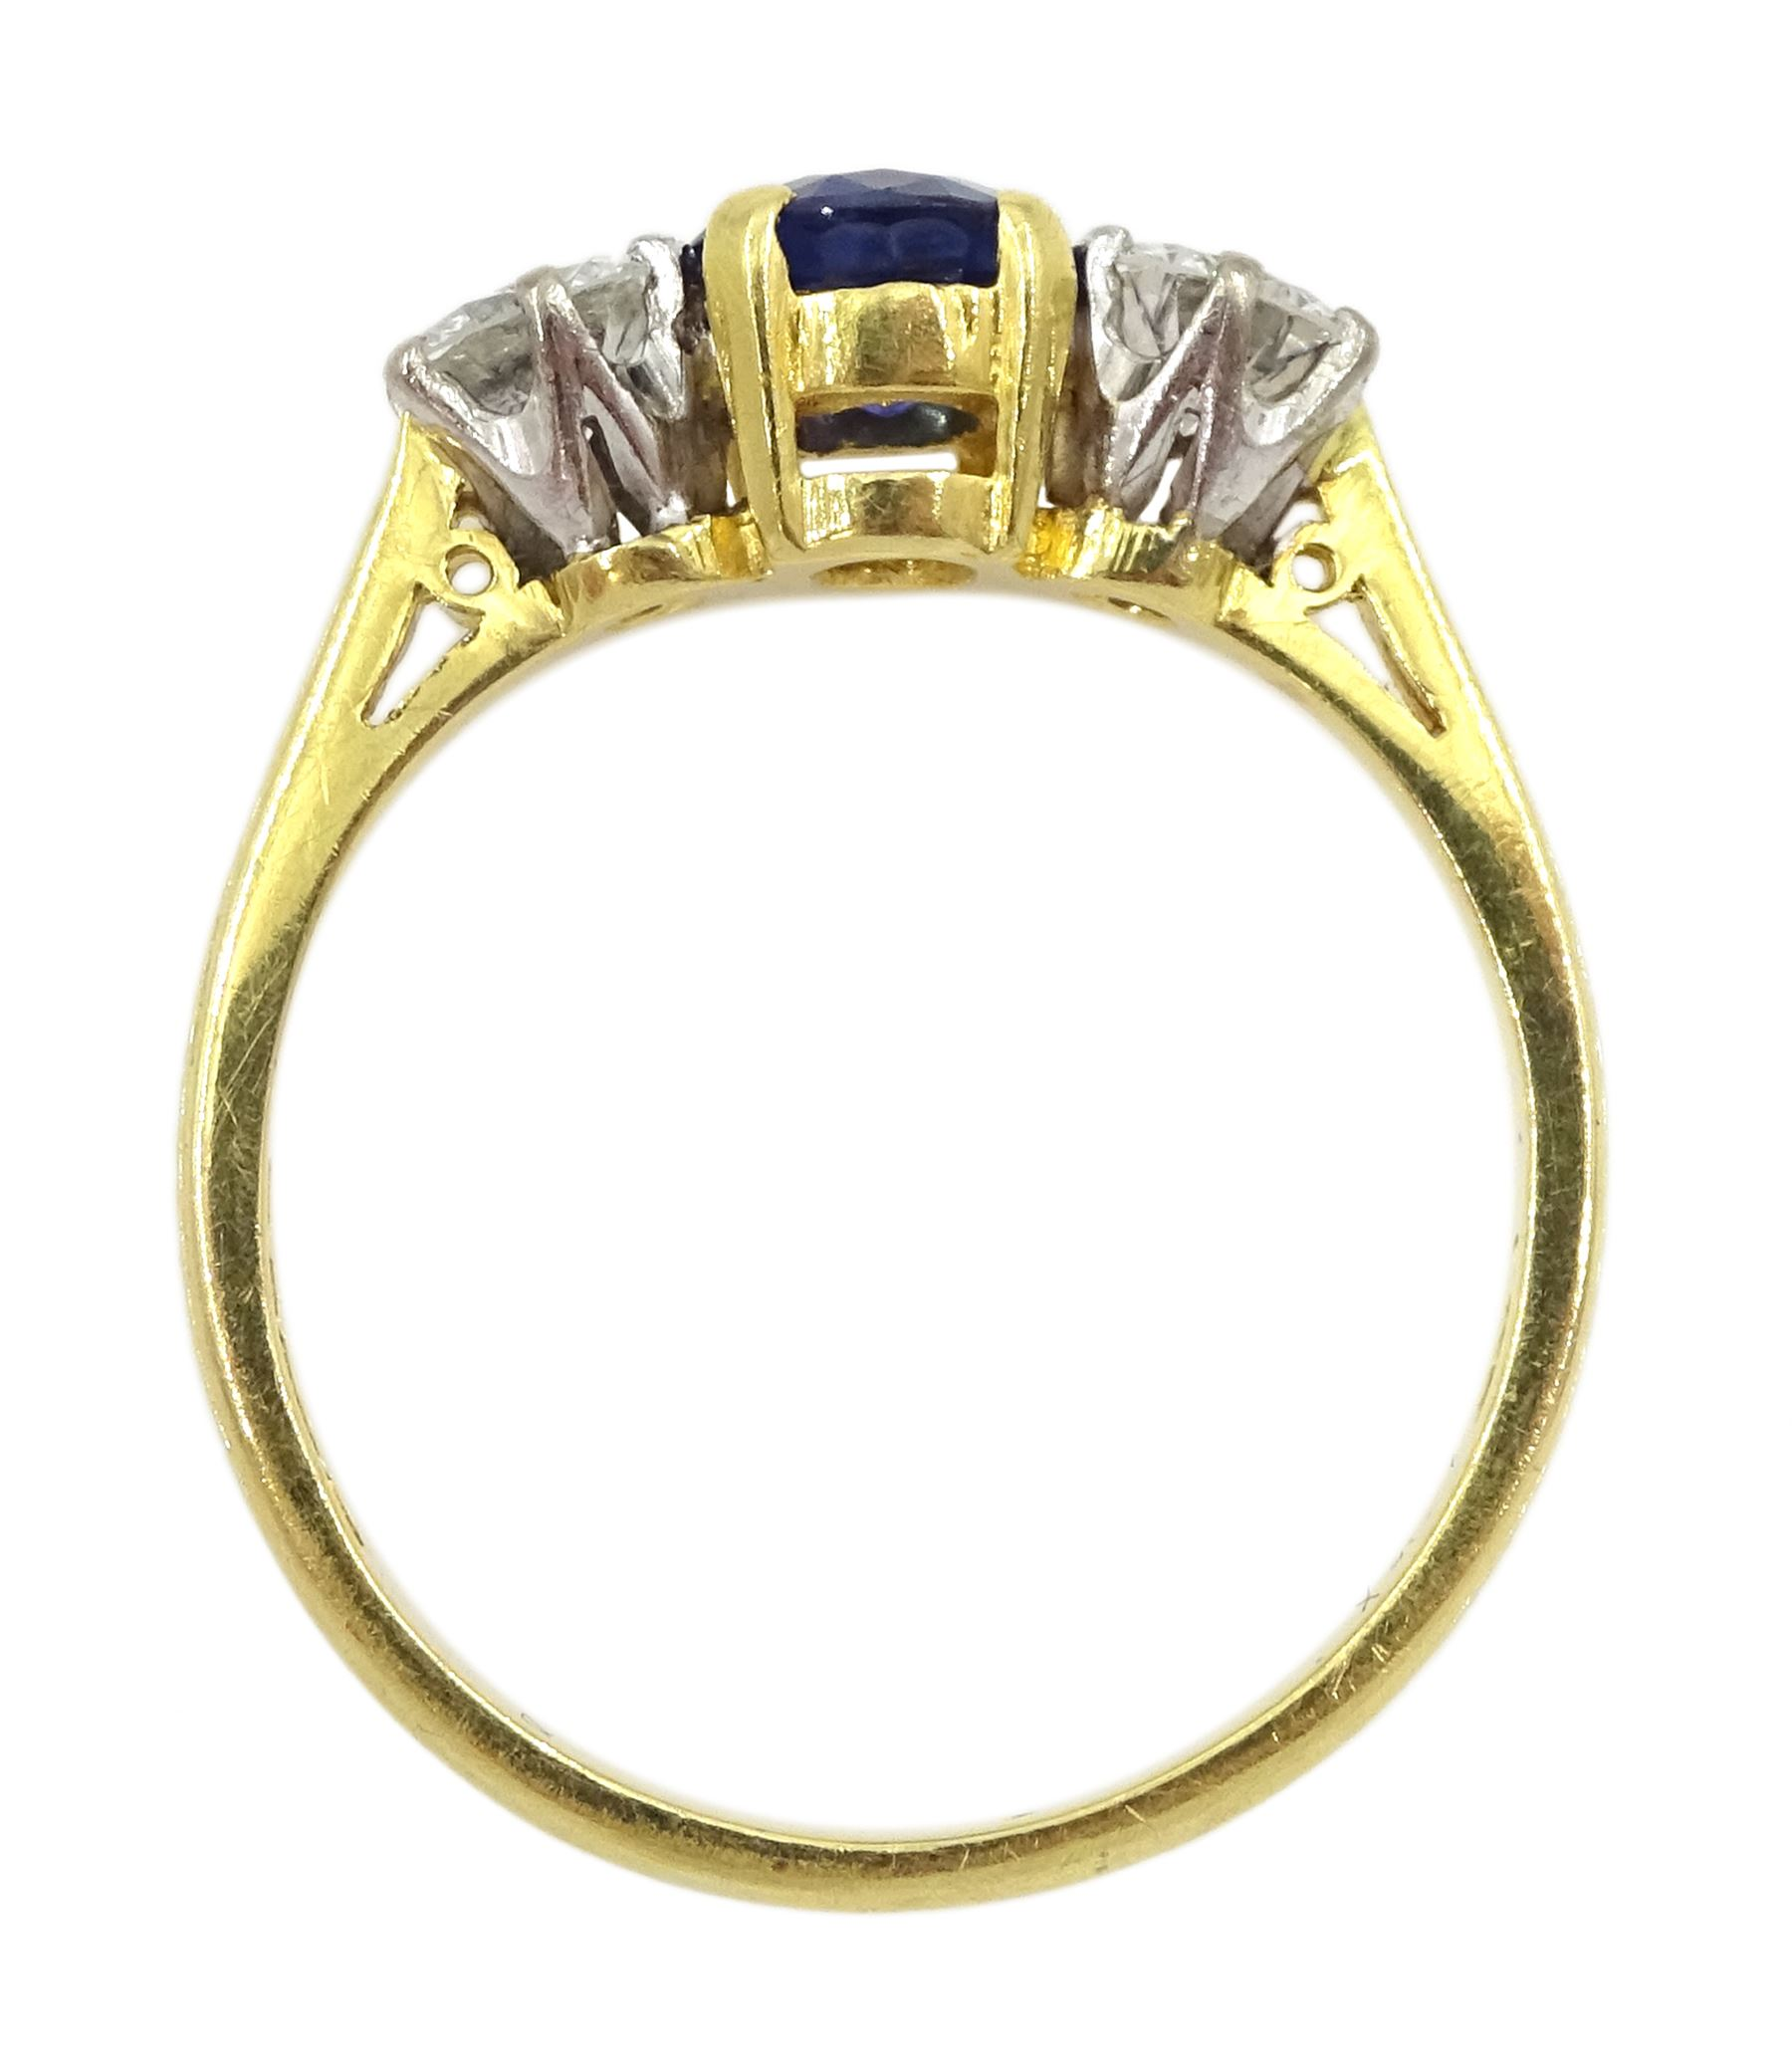 18ct gold three stone oval sapphire and round brilliant cut diamond ring - Image 2 of 4